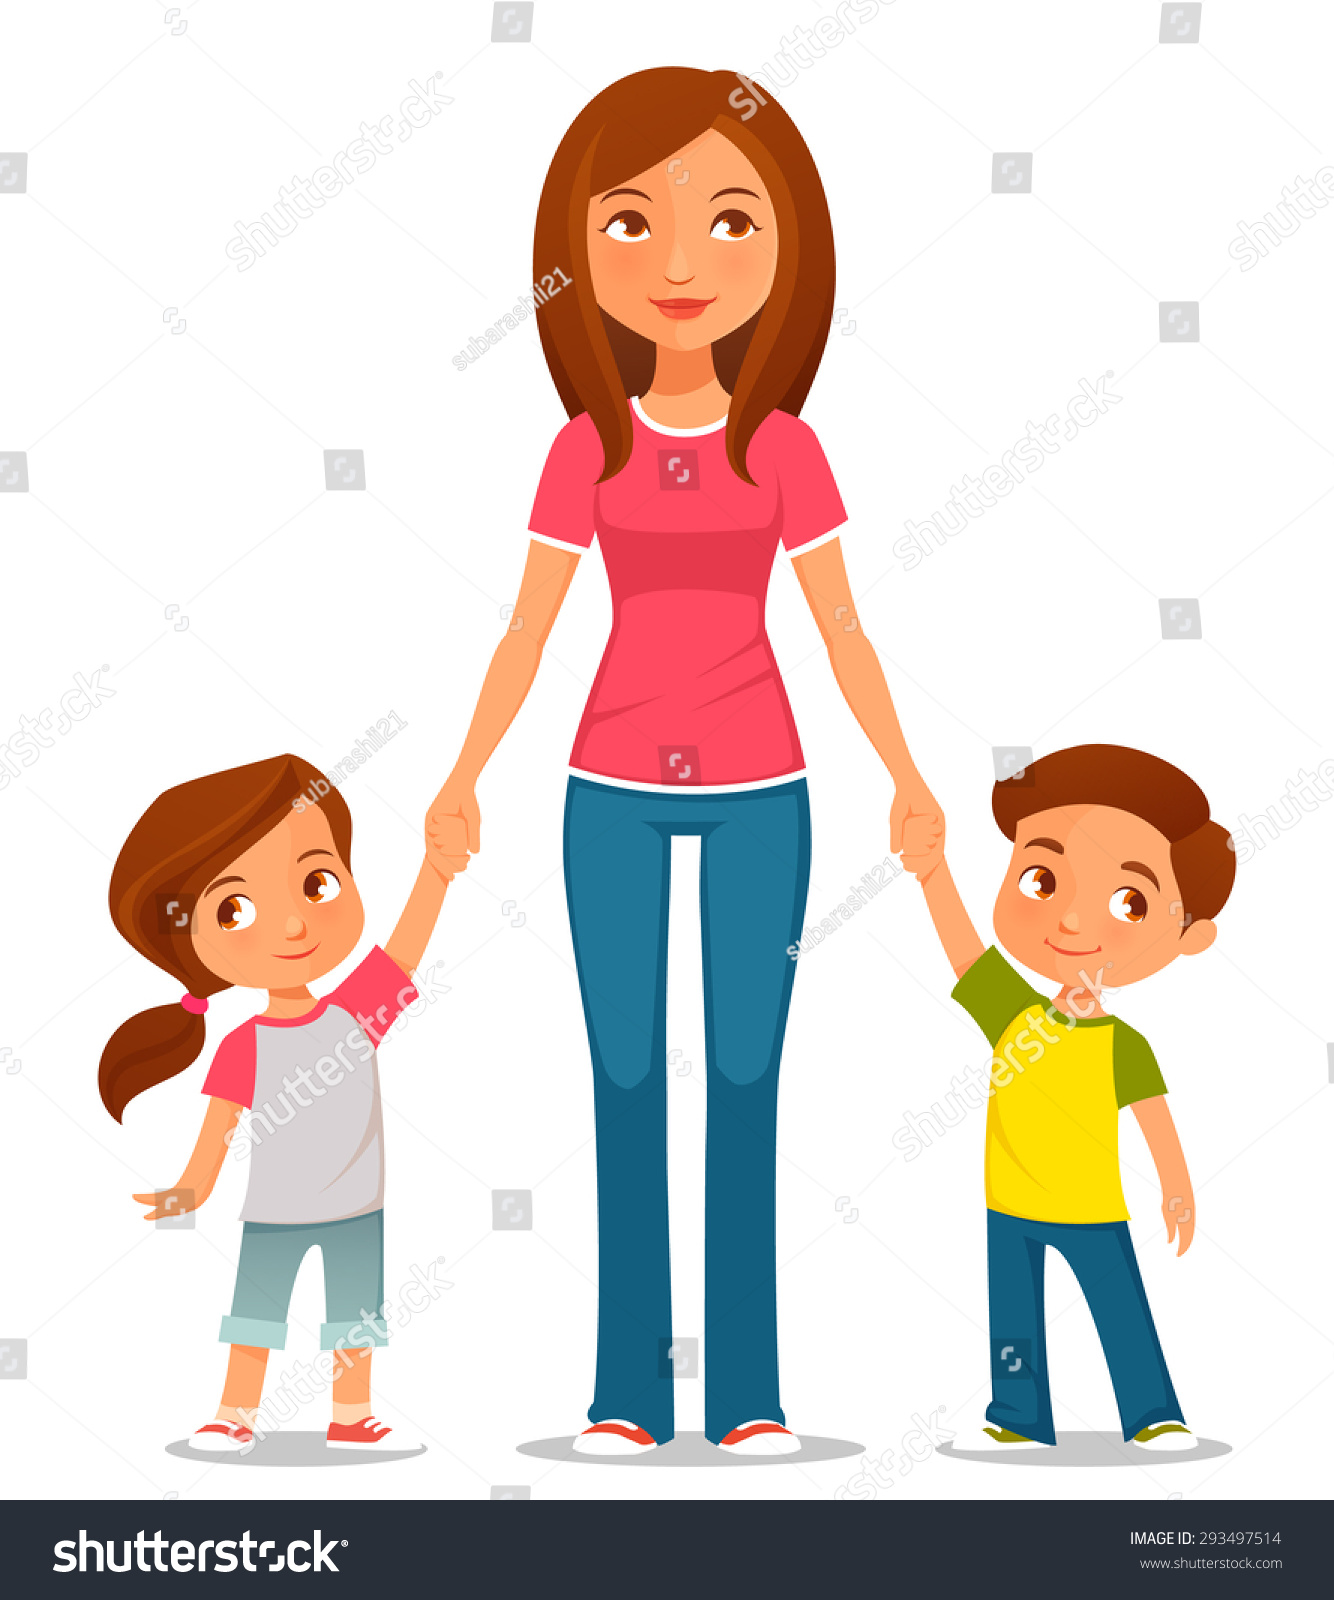 Cute Cartoon Illustration Mother Two Kids Stock Vector ...